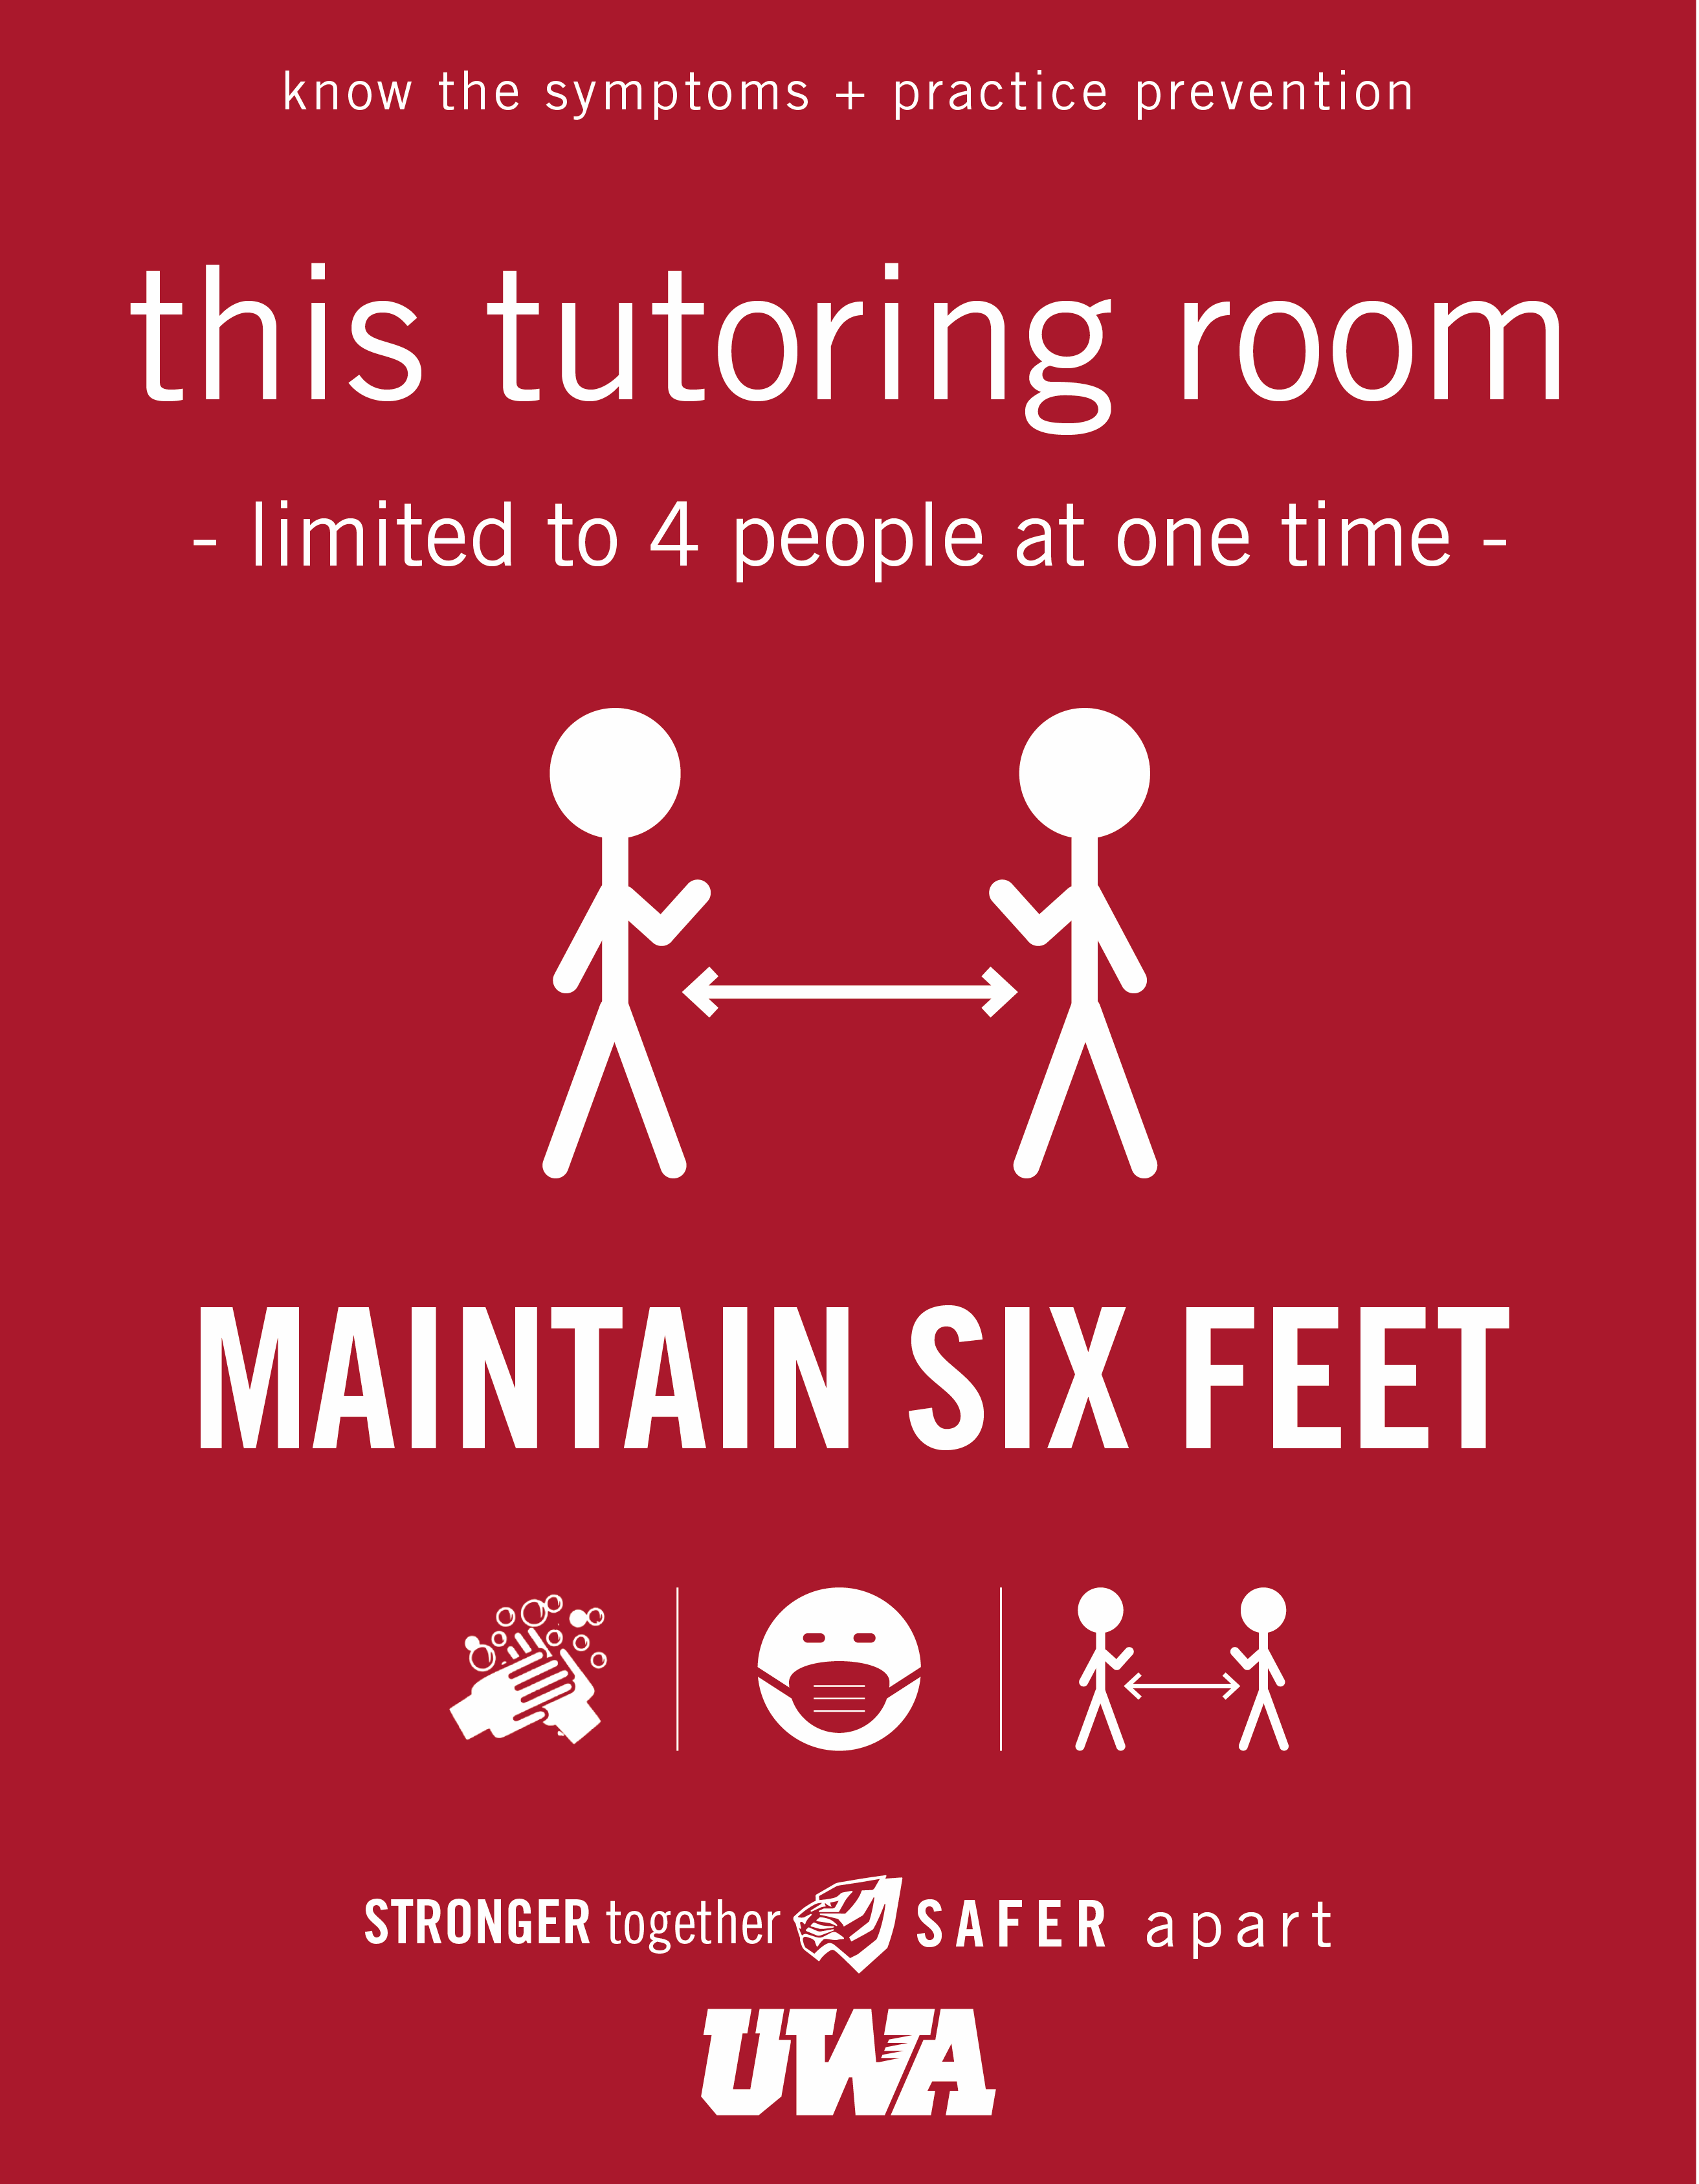 UWA Campus COVID Safety Tutoring Room Limit